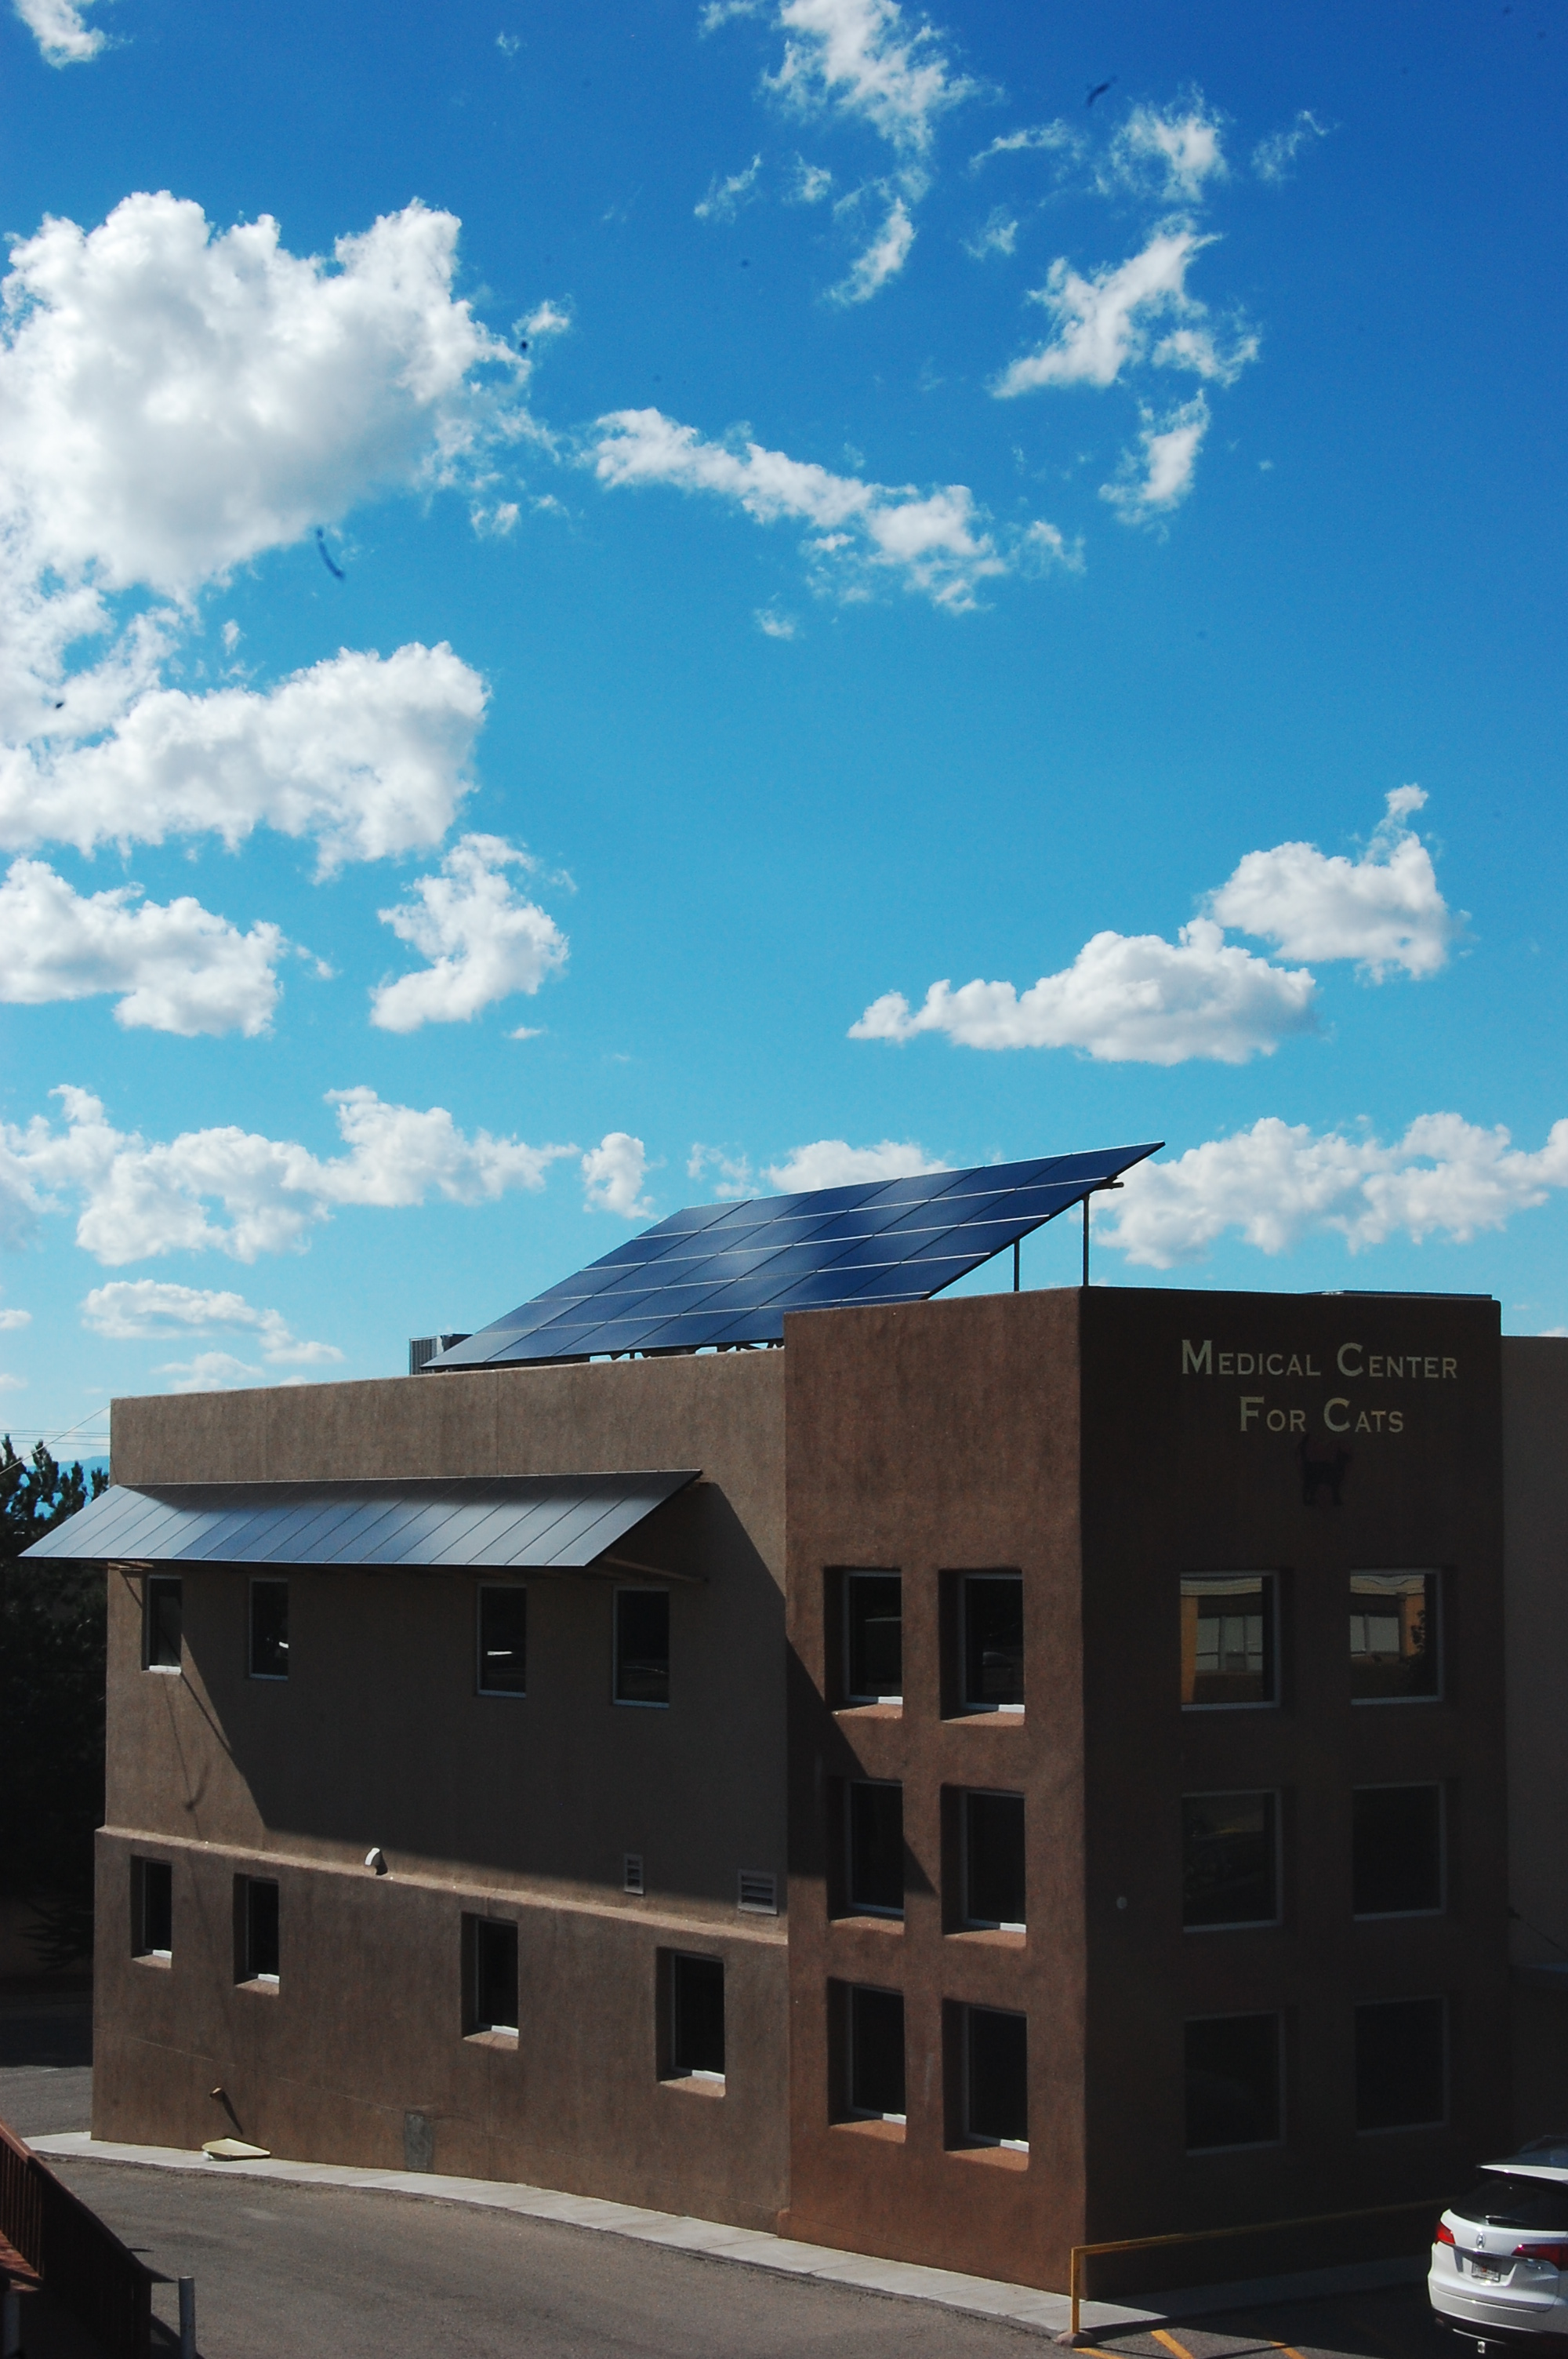 Solar panels on the feline hospital roof and south wall.